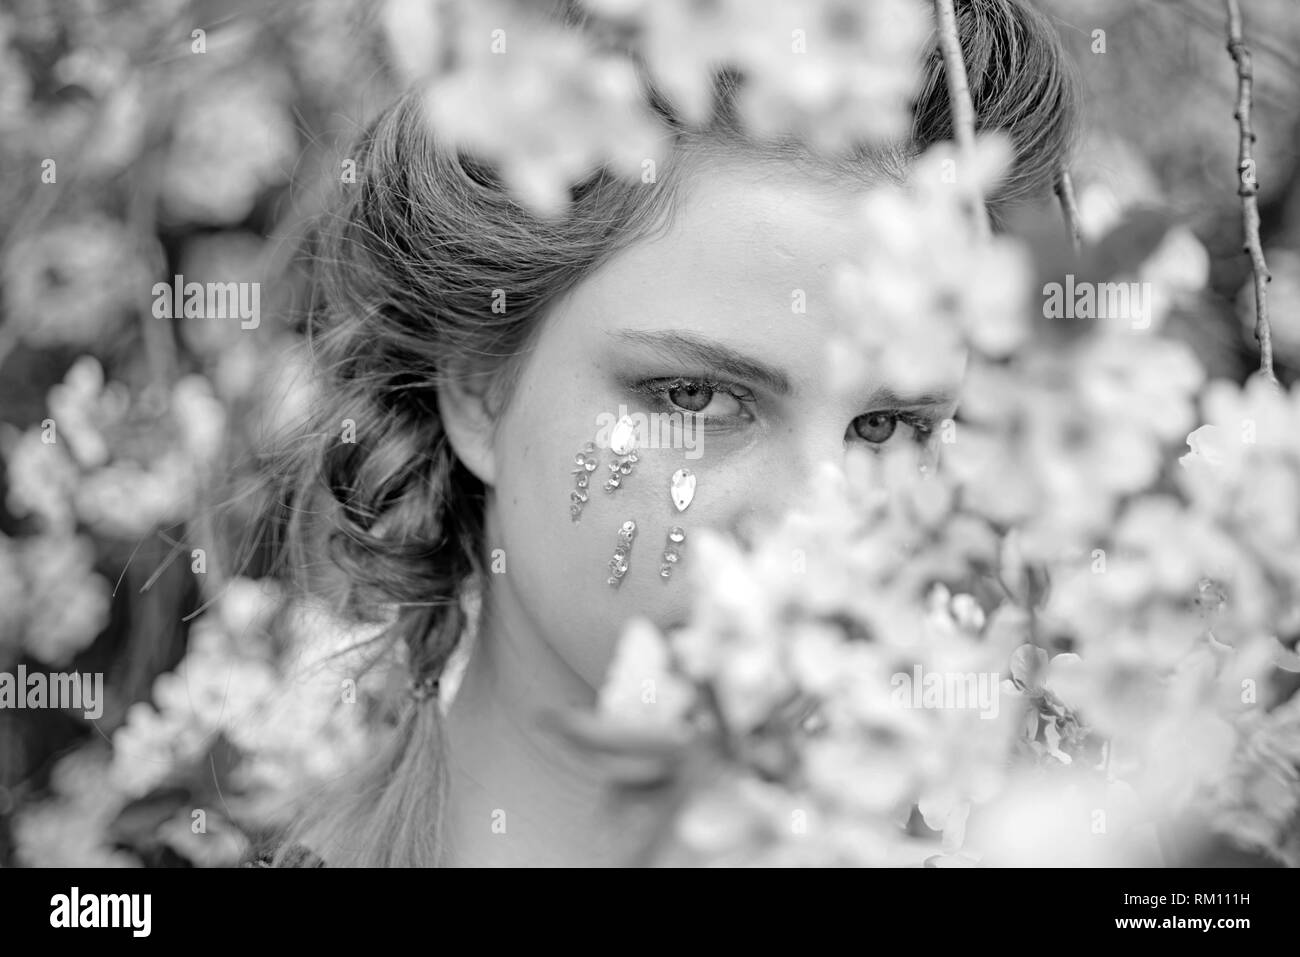 face and skincare. womens health. allergy to flowers. Springtime vacation. weather forecast. Natural beauty and spa therapy. Woman with spring fashion - Stock Image